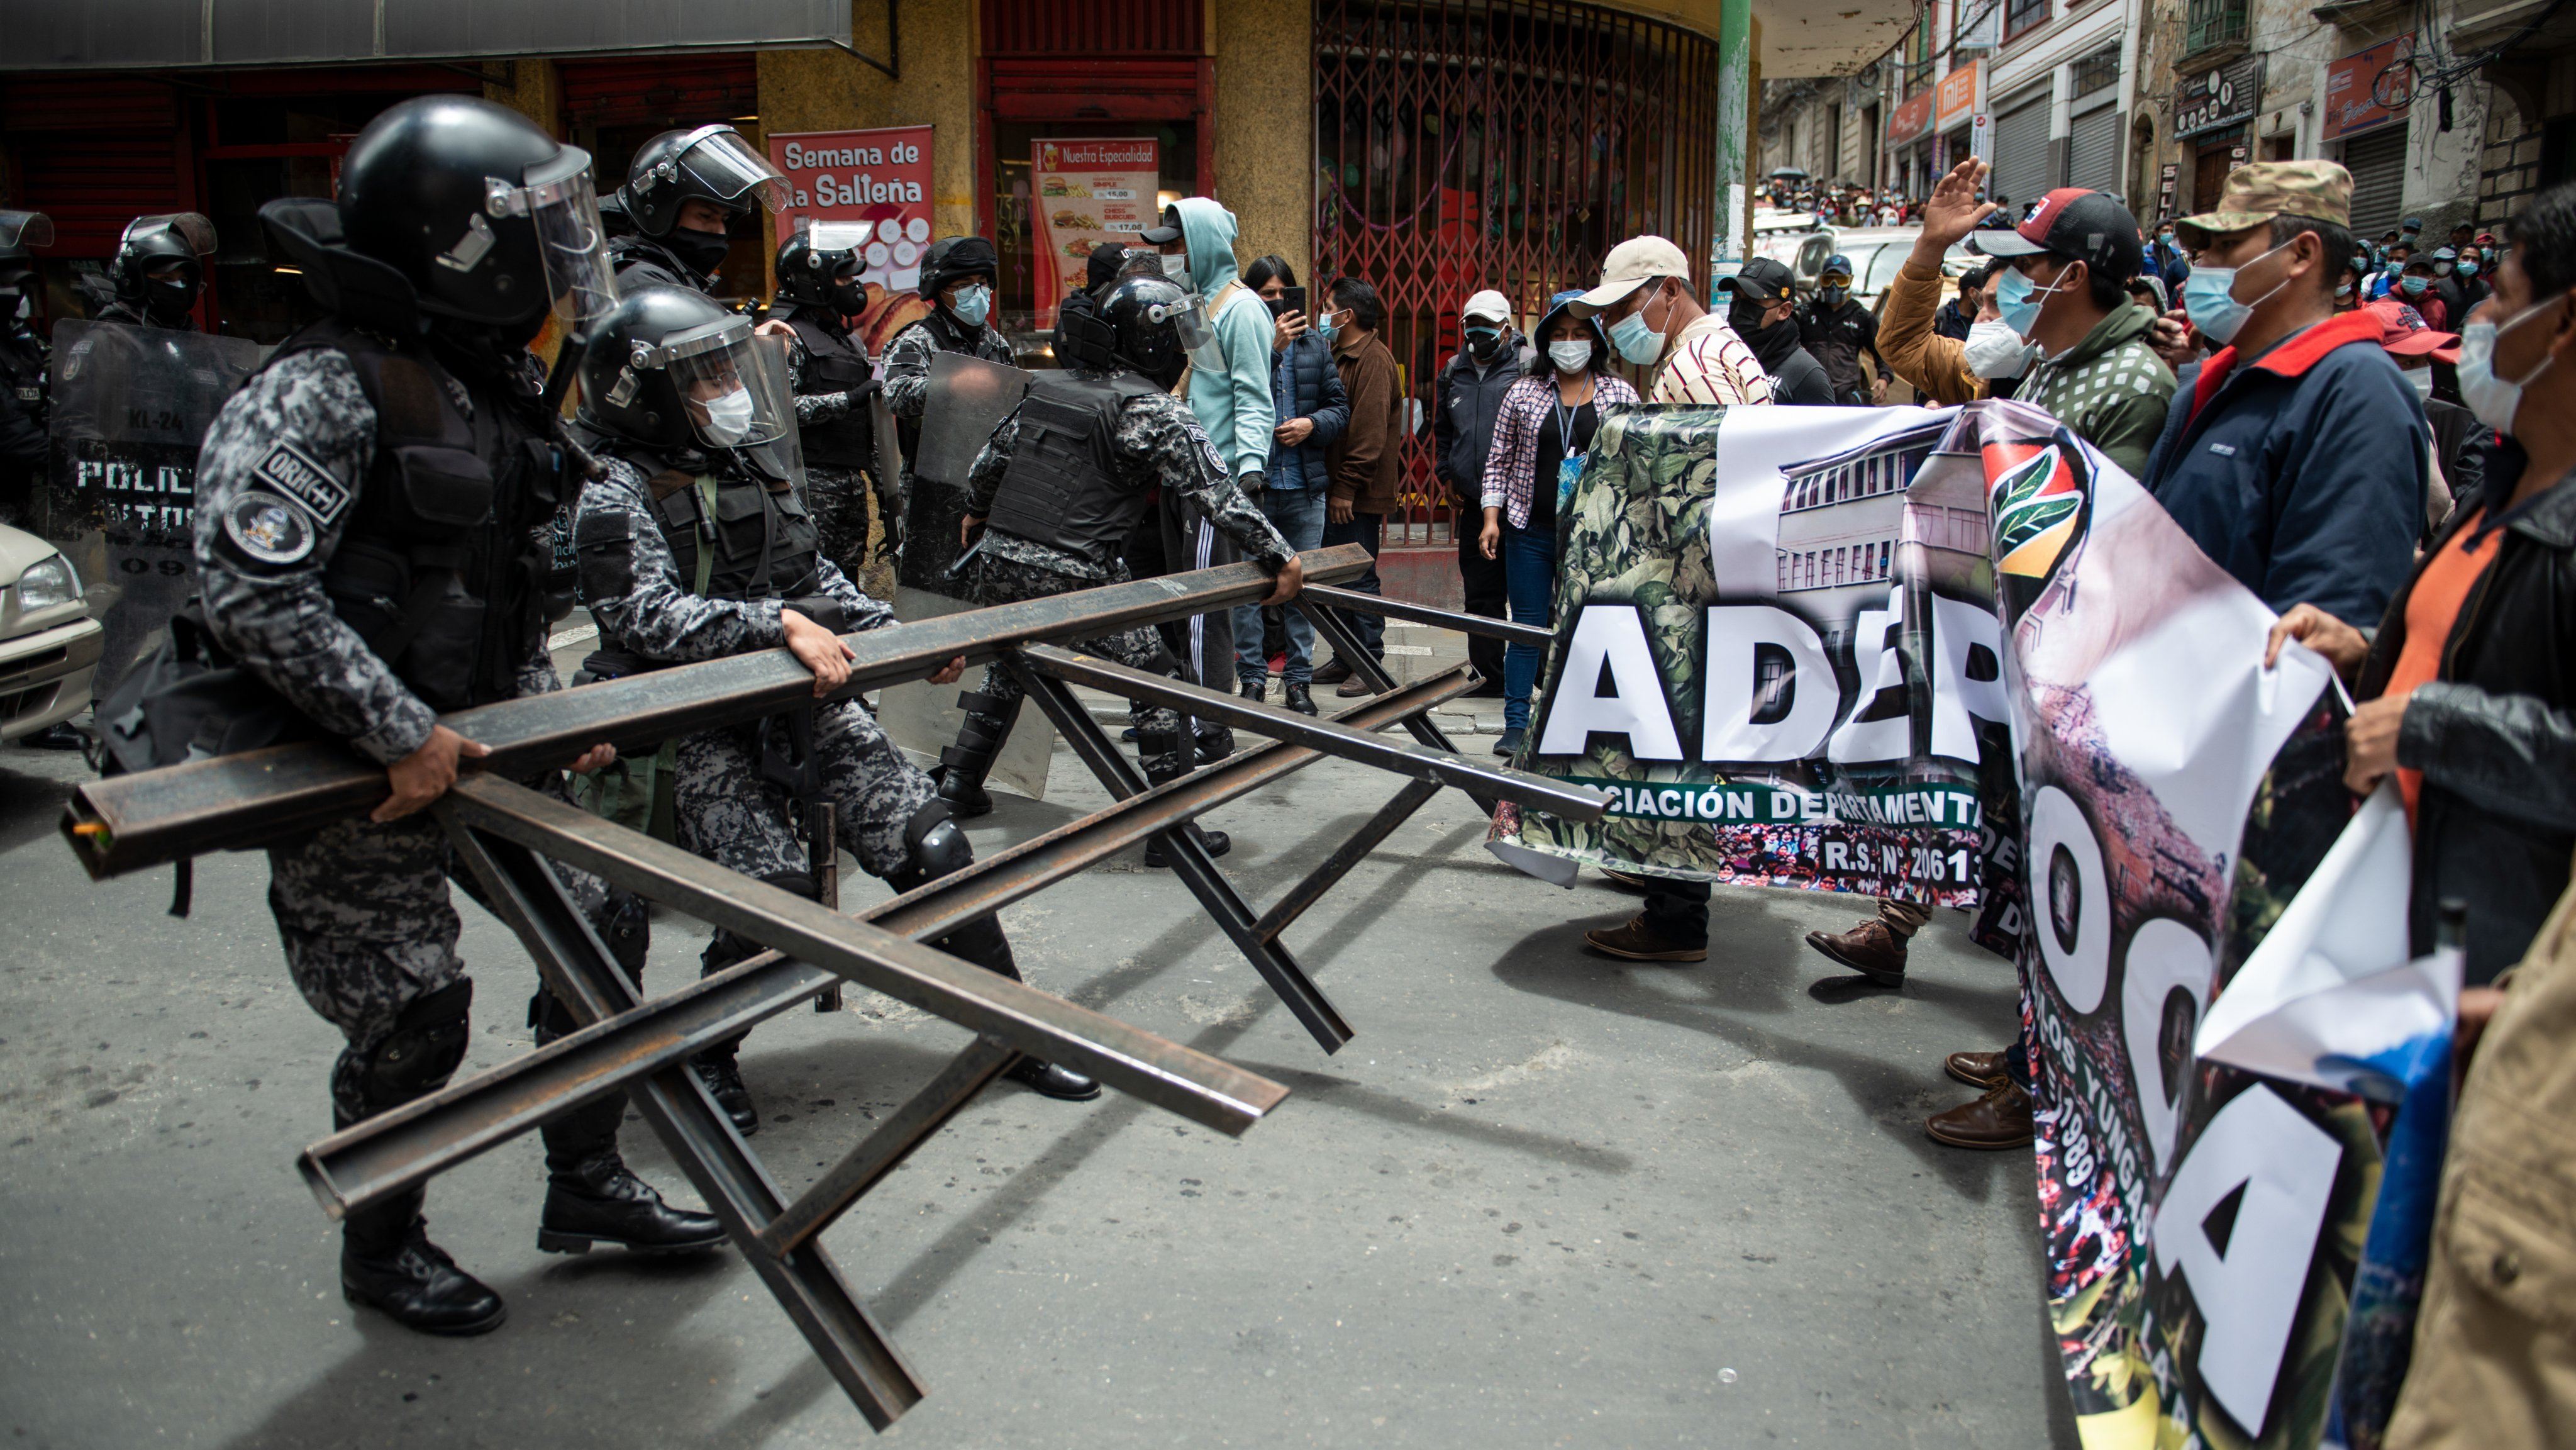 Protest by coca producers in Bolivia